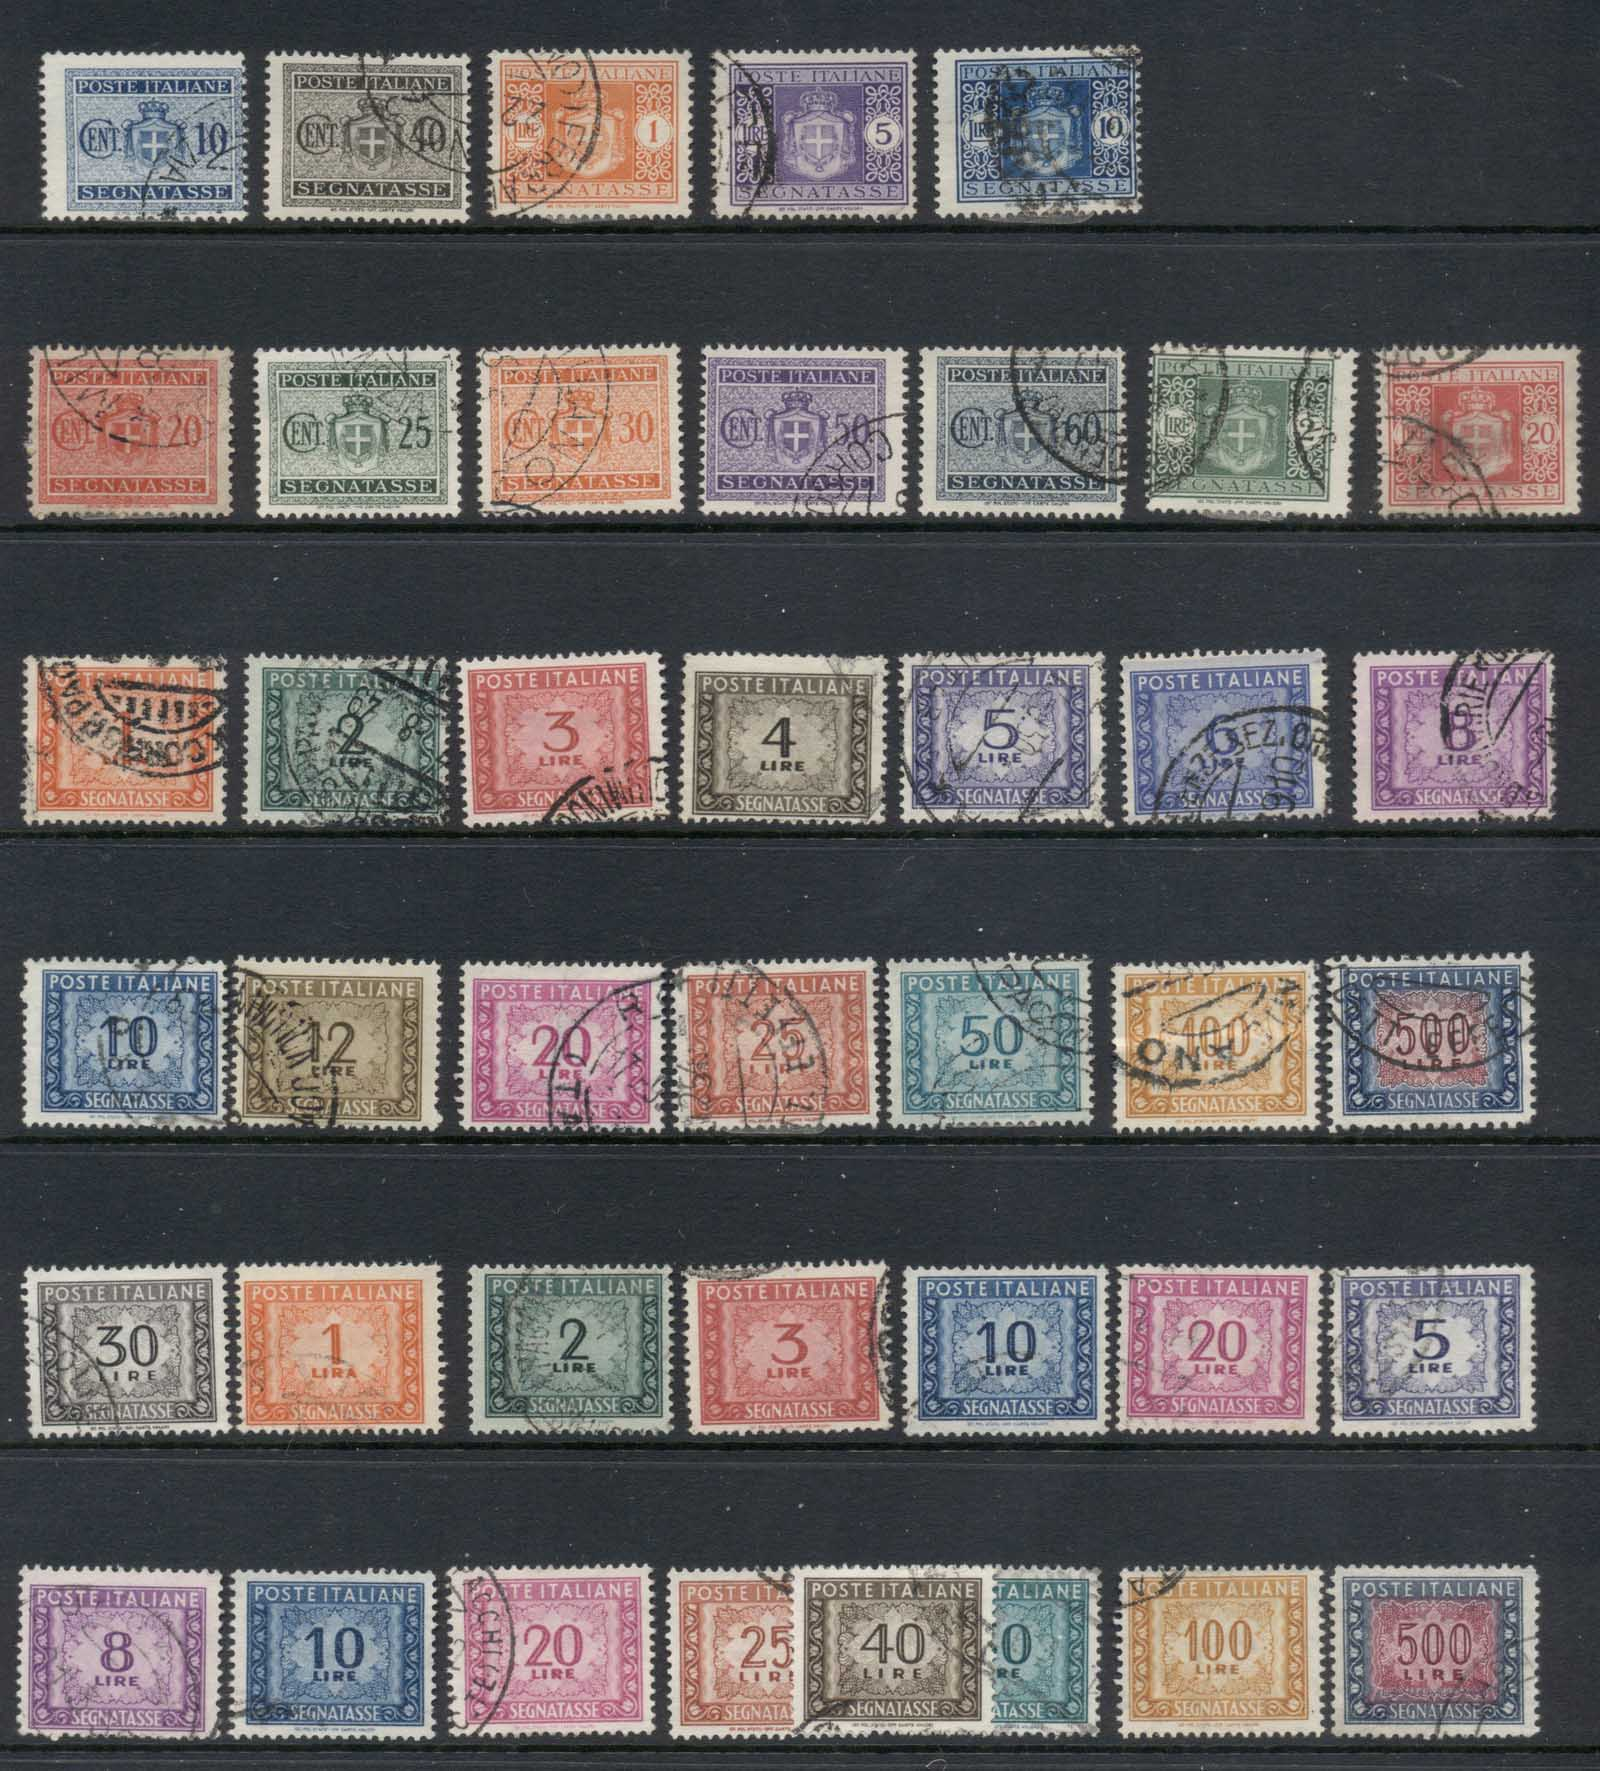 Italy 1945 on Assorted Postage Dues FU